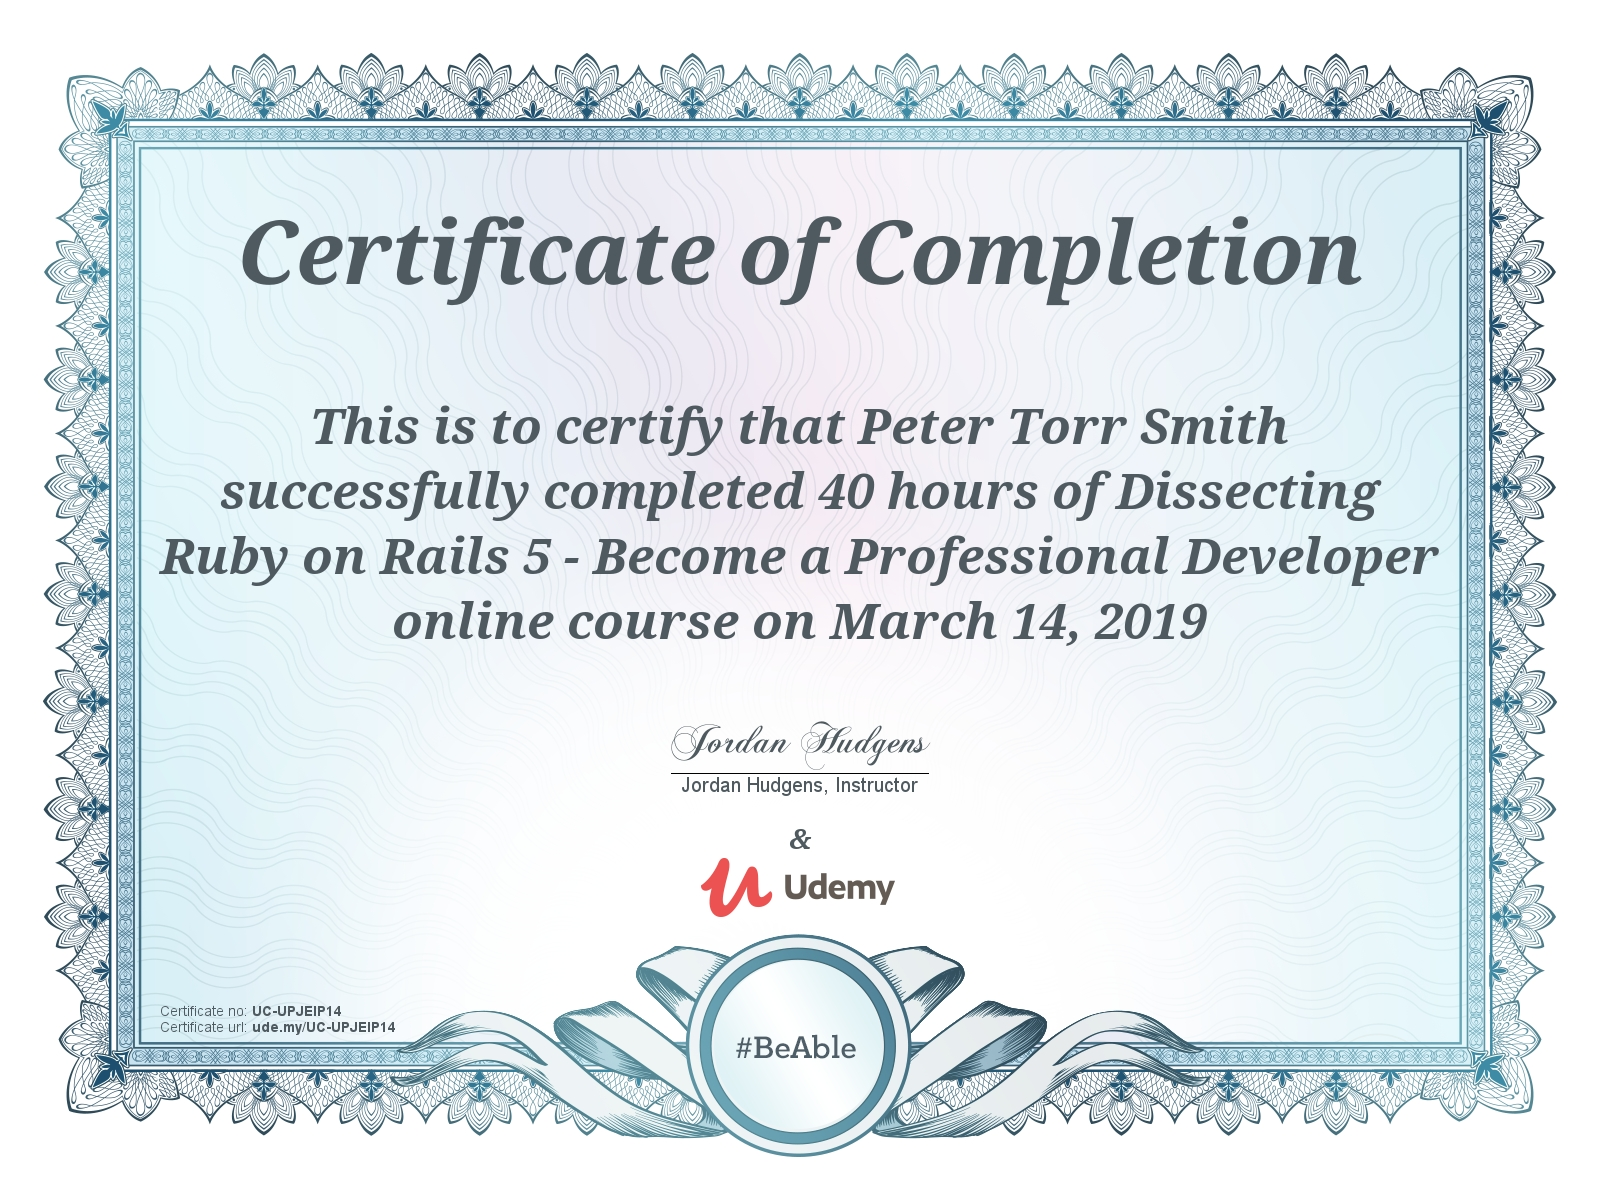 Certificate for Completing Udemy Dissecting Rails 5 Professional course